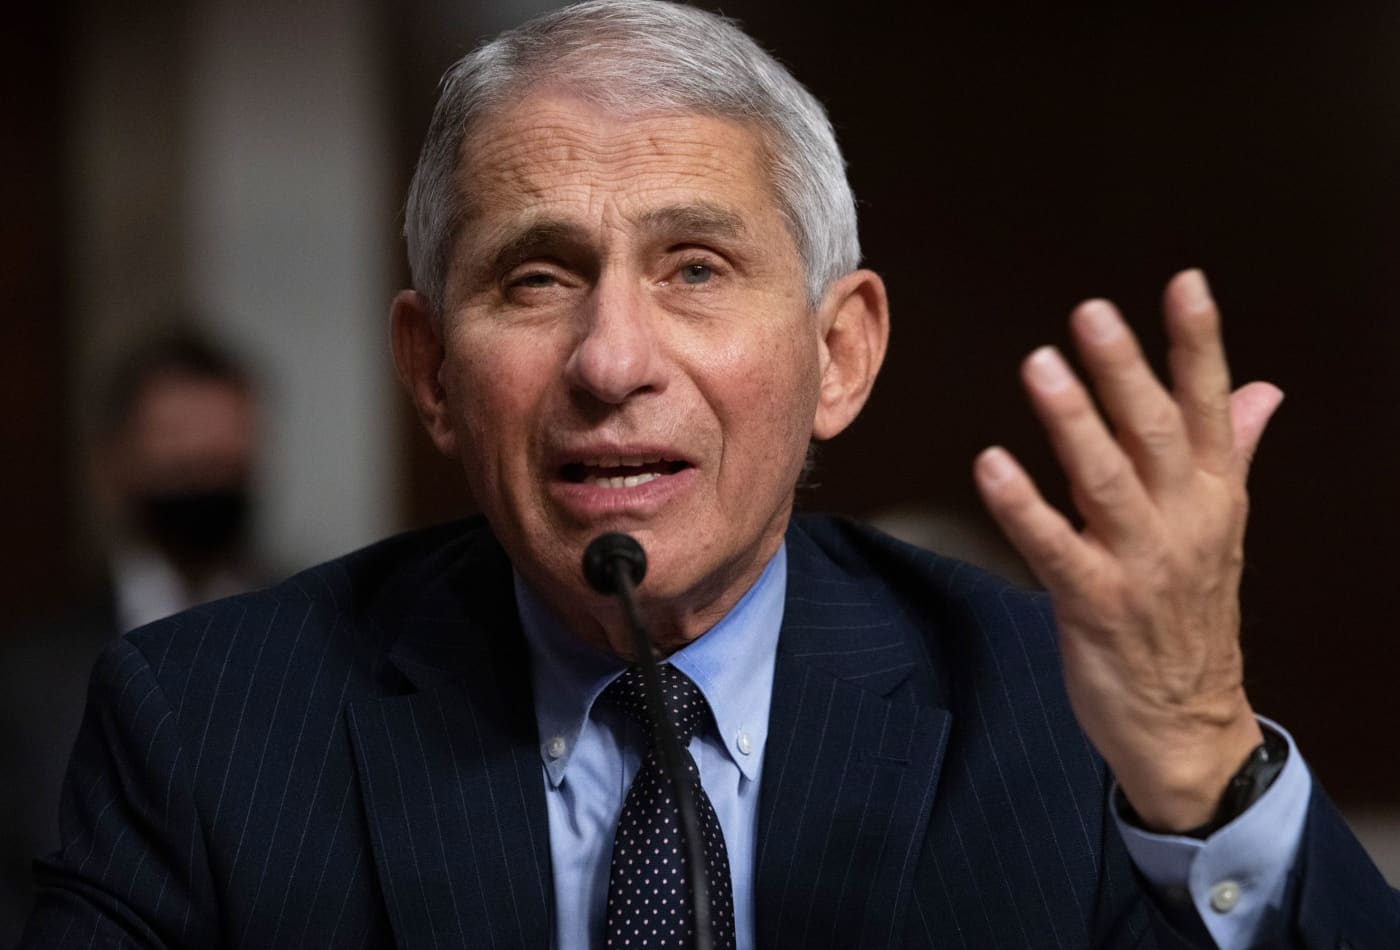 Fauci: The U.S. Is 'Not in a Good Place'